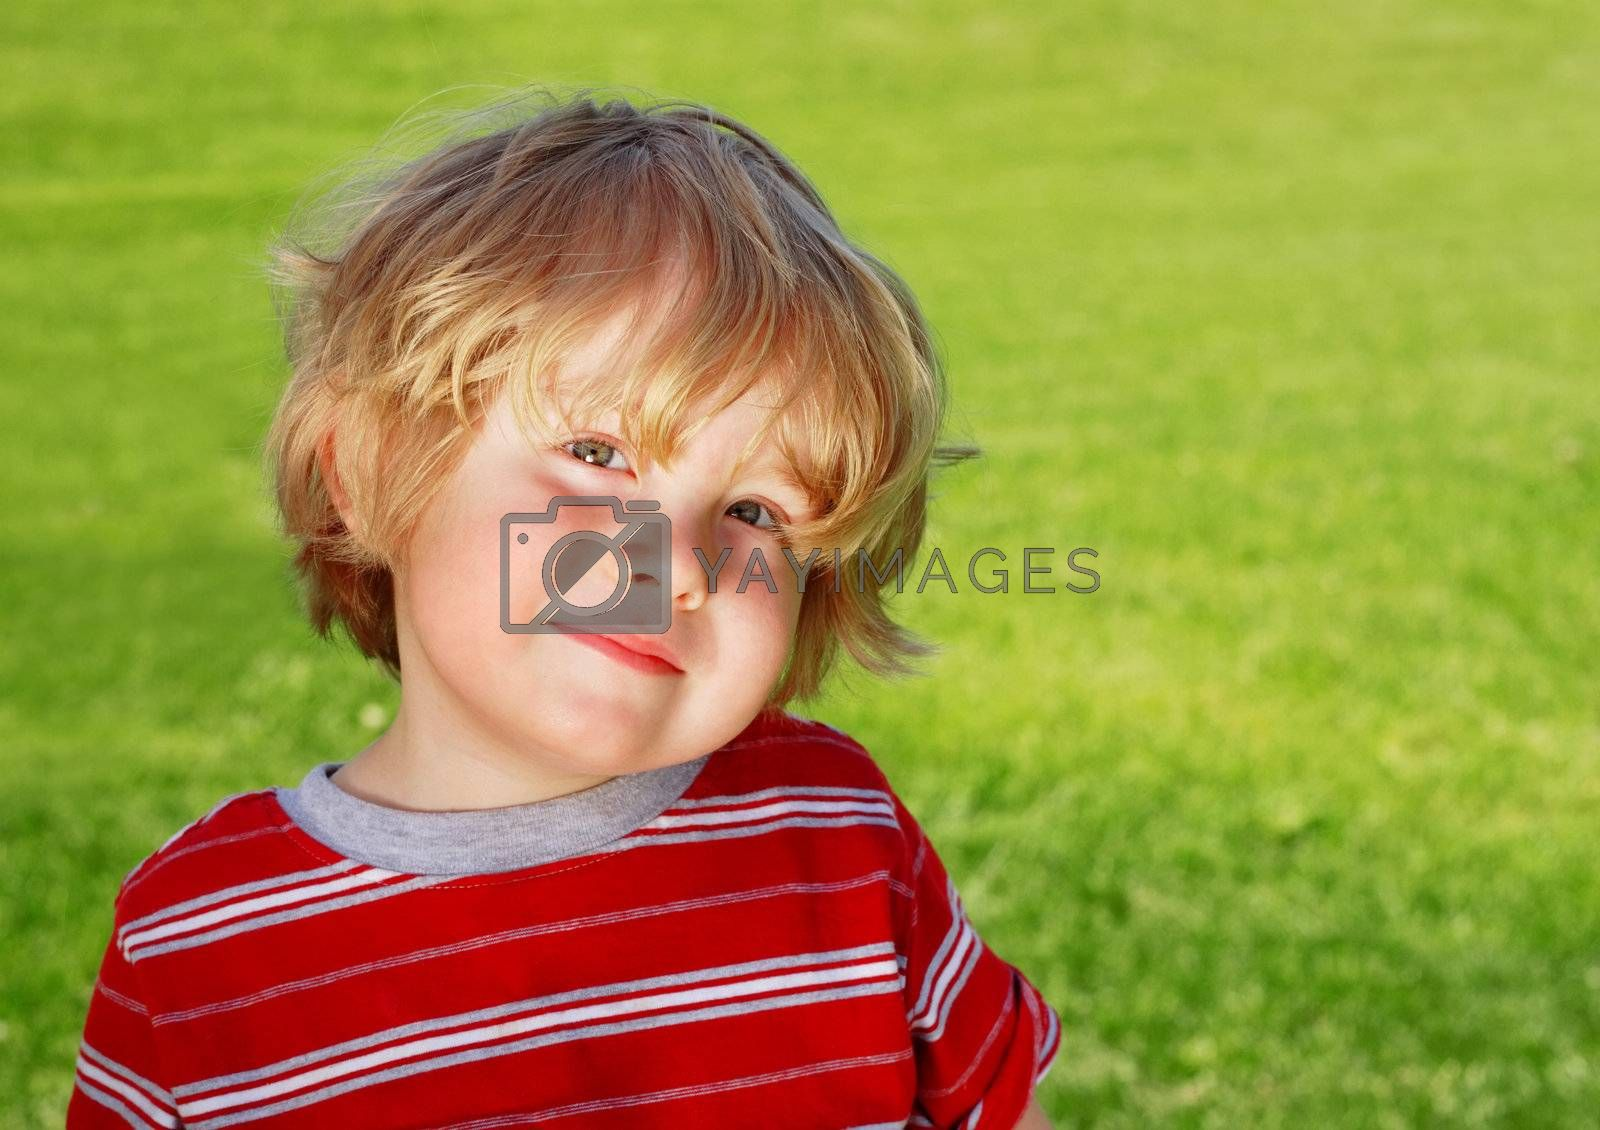 A young boy smiles at the camera while sitting on the grass